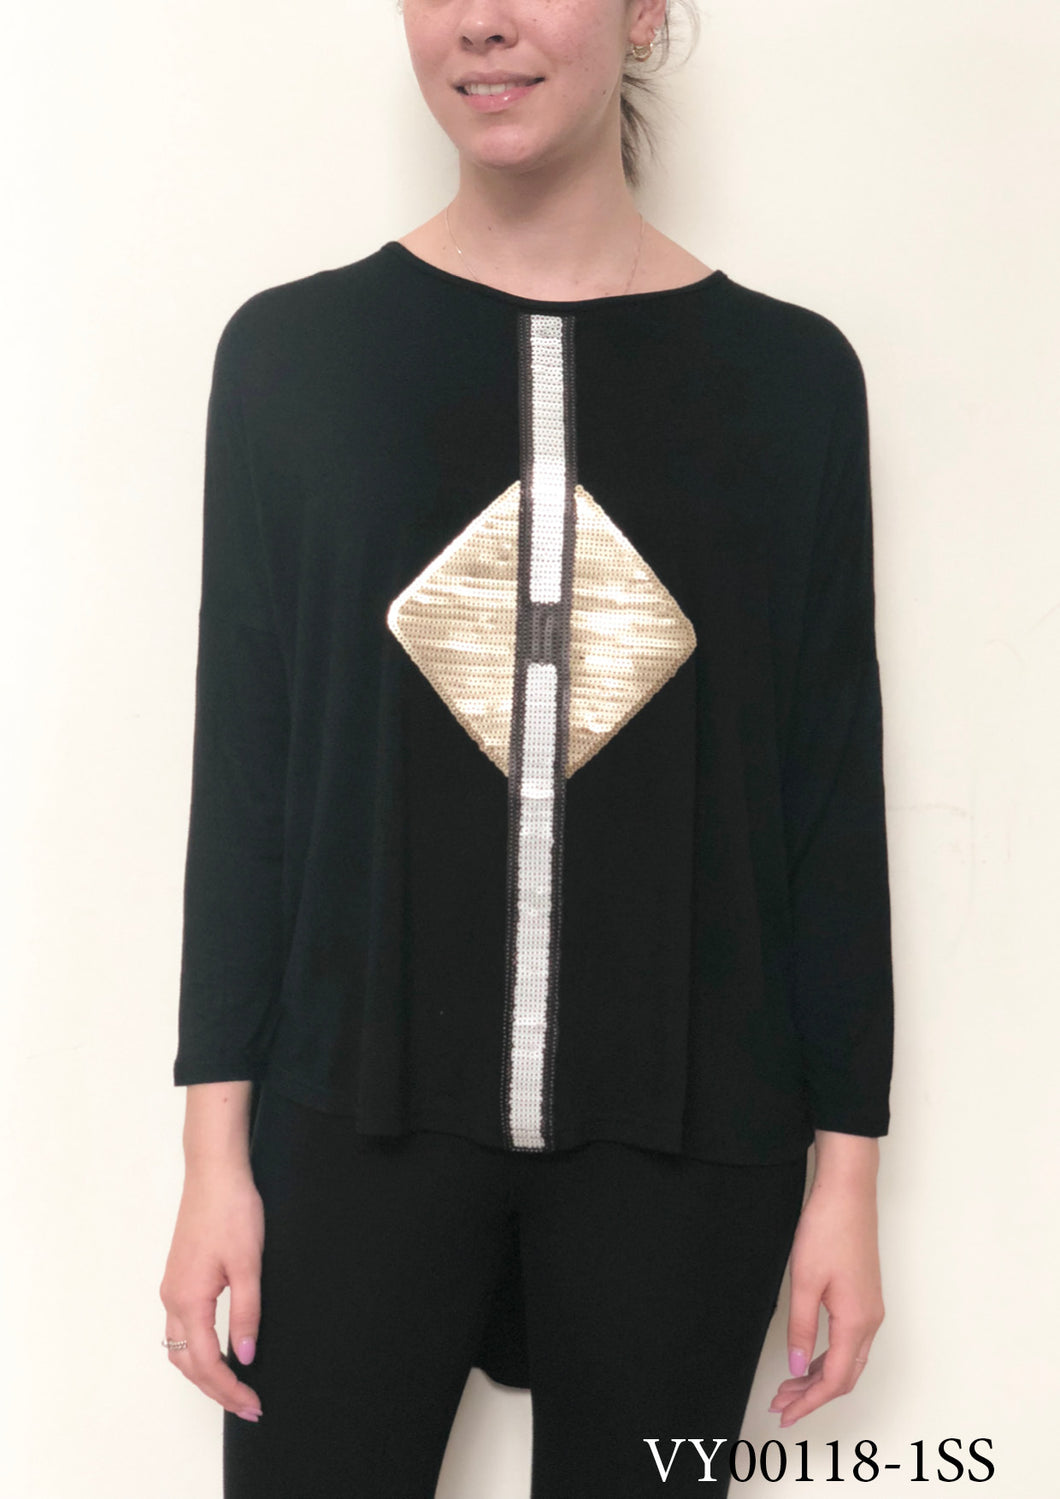 VY00118-1SS Silver And Gold Detailed Long Sleeve Top (Pack)